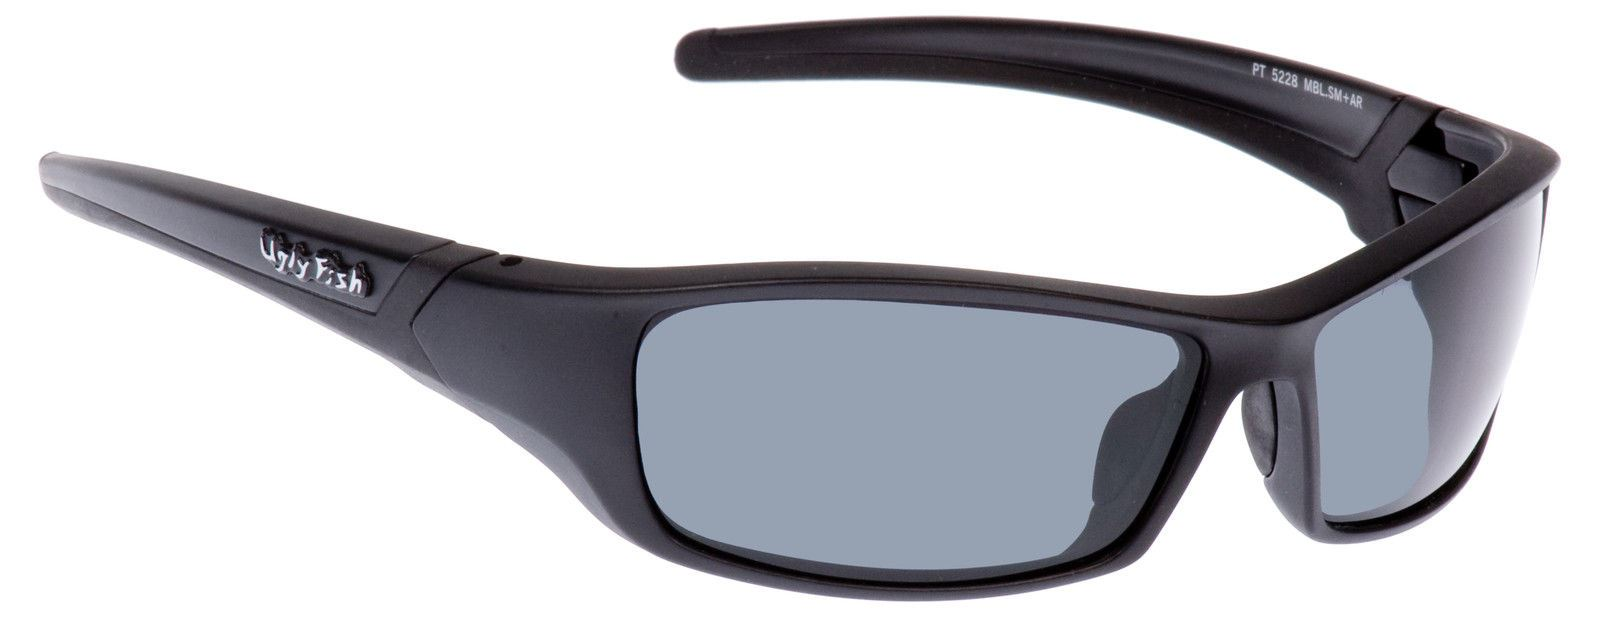 3d186a8d715 Ugly Fish Sunglasses Matt Black With Smoke Lens Sports Shades Eyewear RS5228